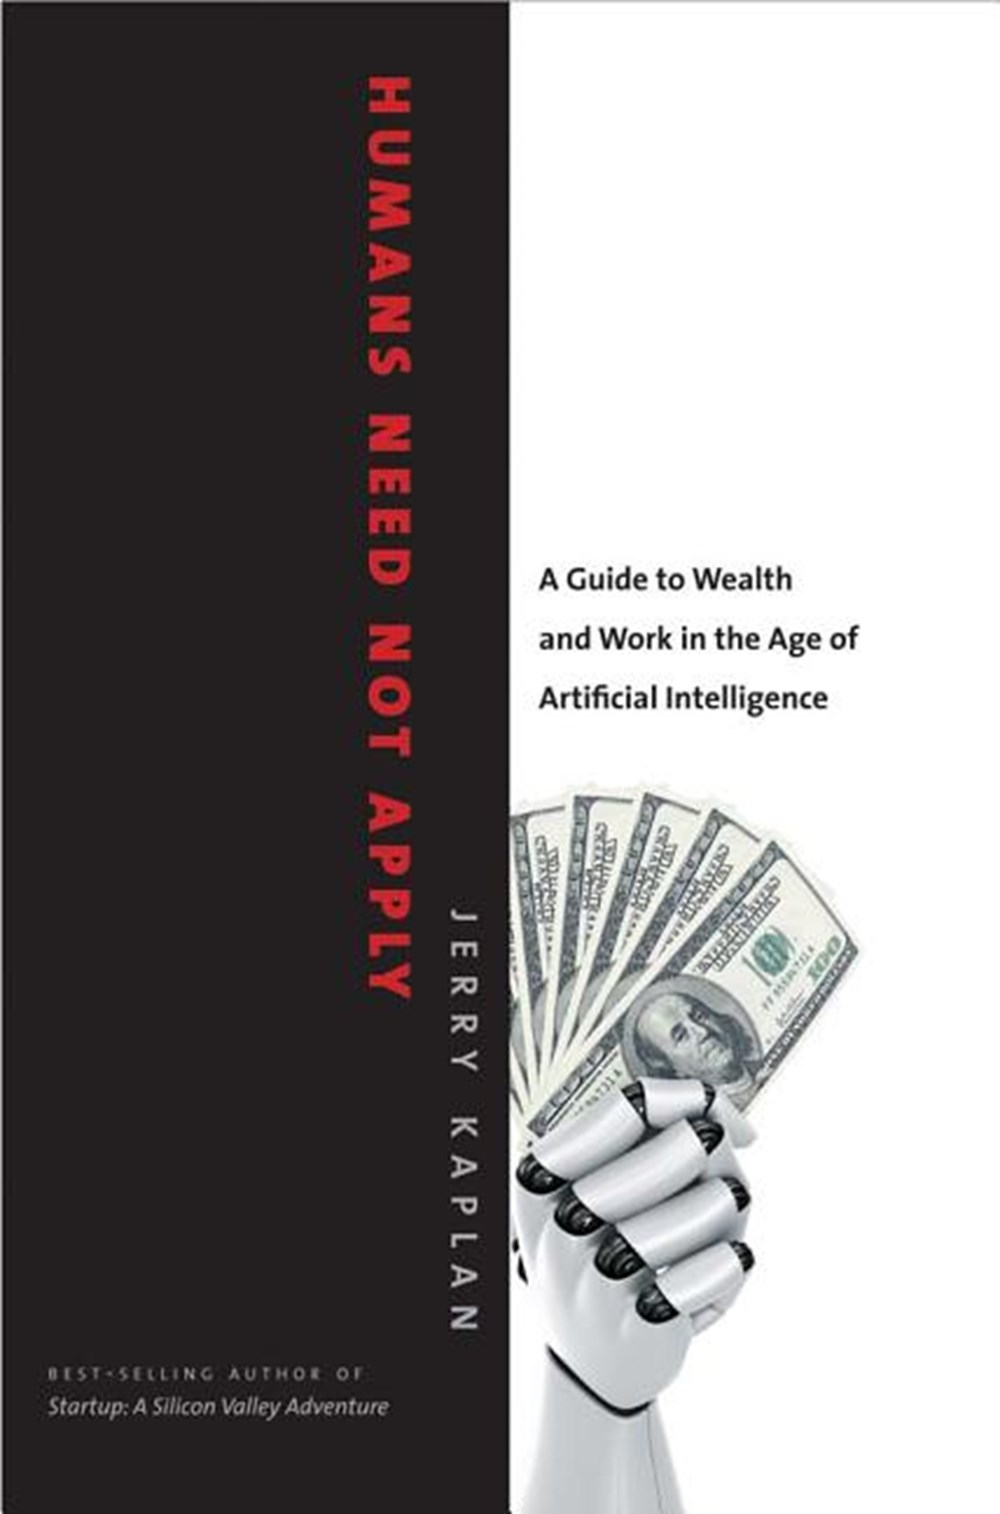 Humans Need Not Apply A Guide to Wealth and Work in the Age of Artificial Intelligence